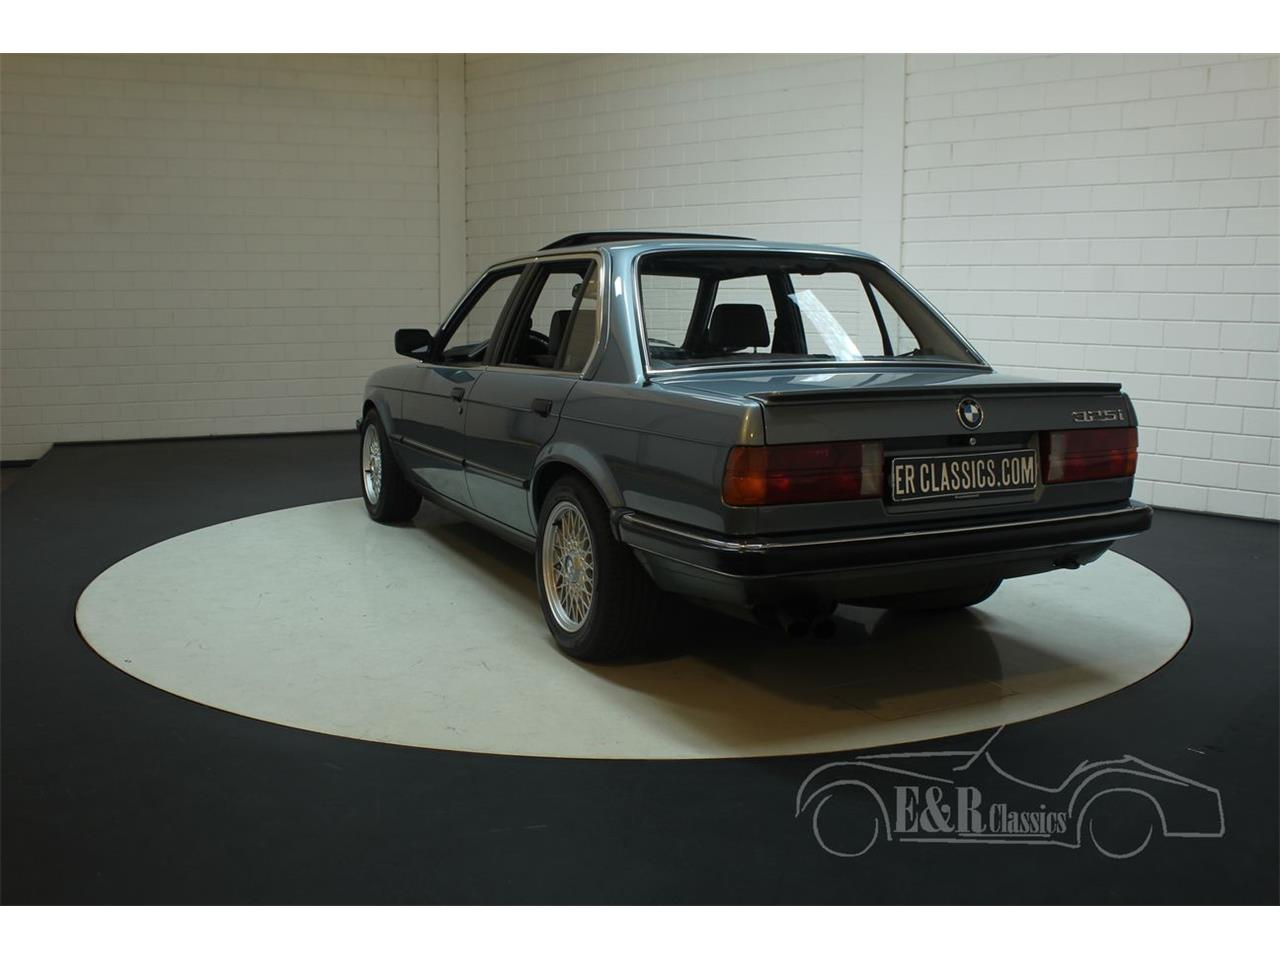 Large Picture of 1986 BMW 325i located in - Keine Angabe - - $33,850.00 Offered by E & R Classics - PGT1